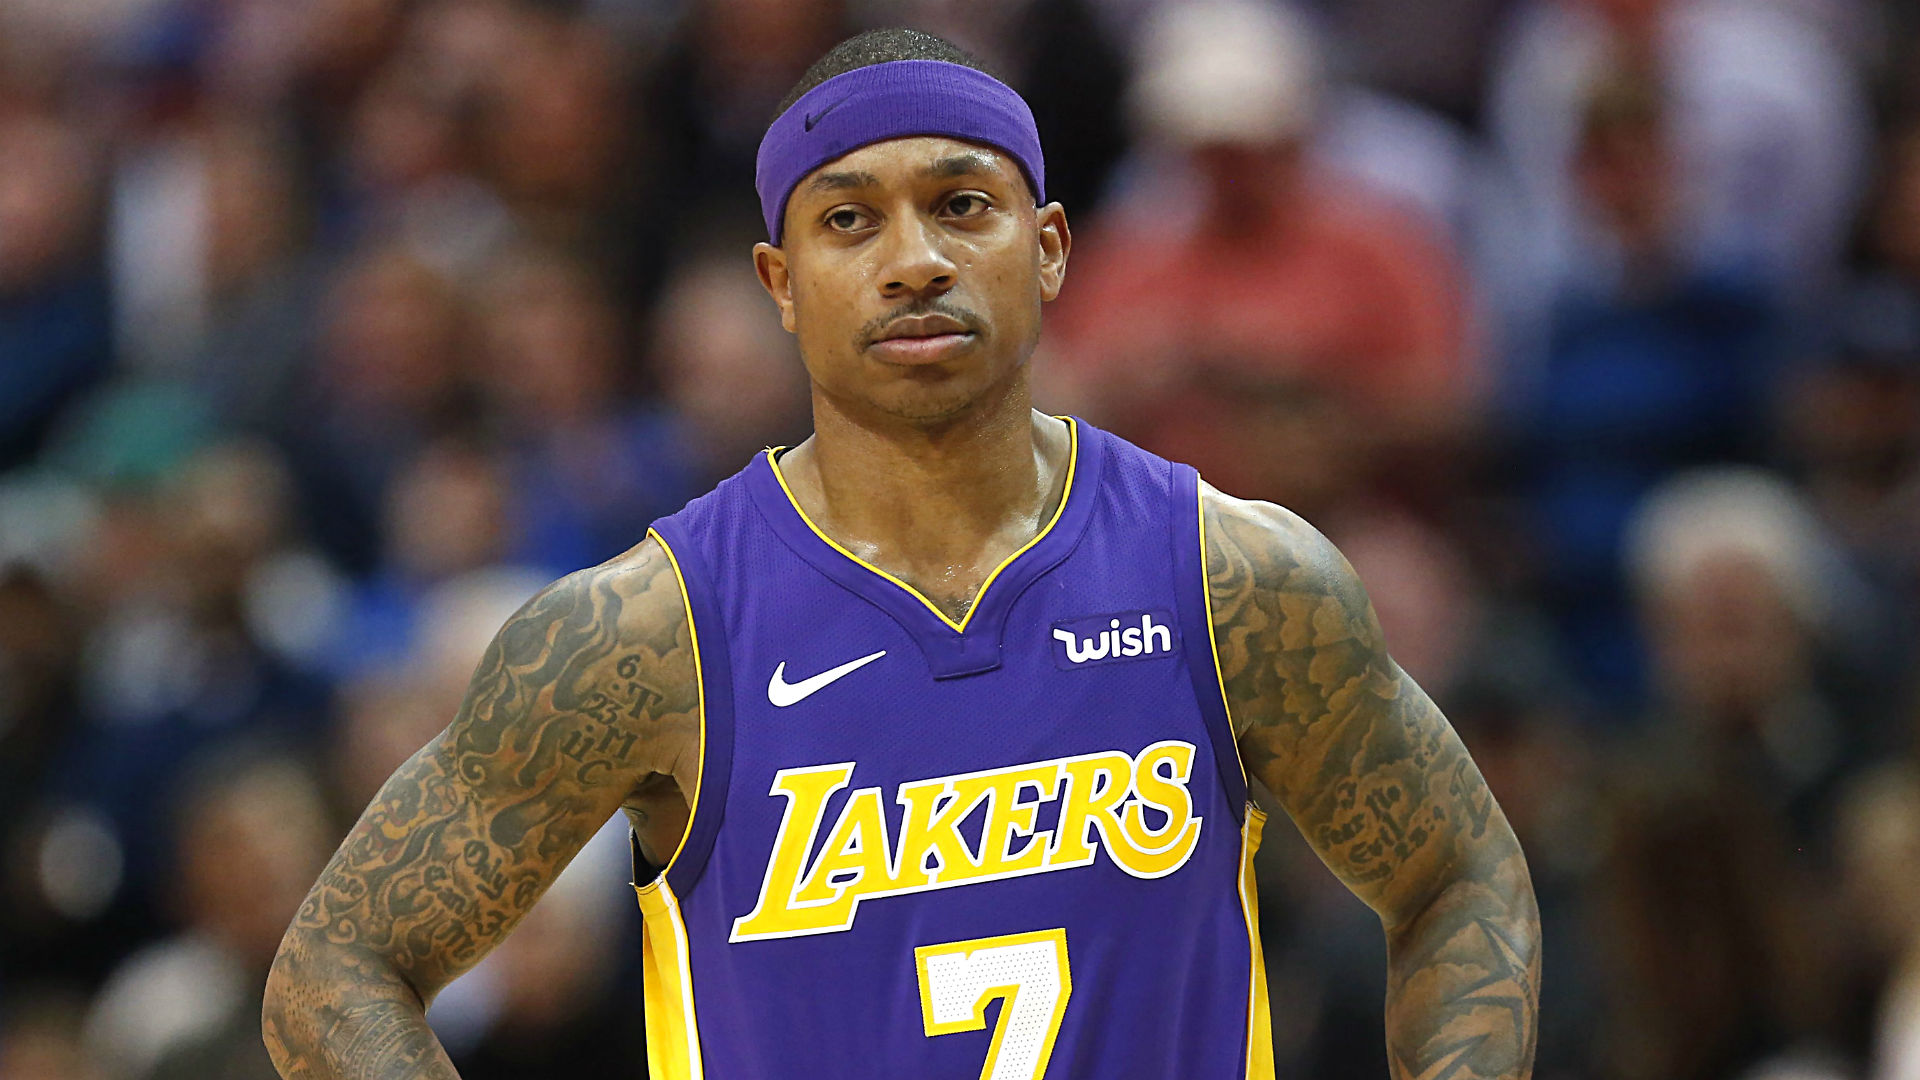 Isaiah Thomas injury update: Nuggets G not expected to be ready for training camp, report says